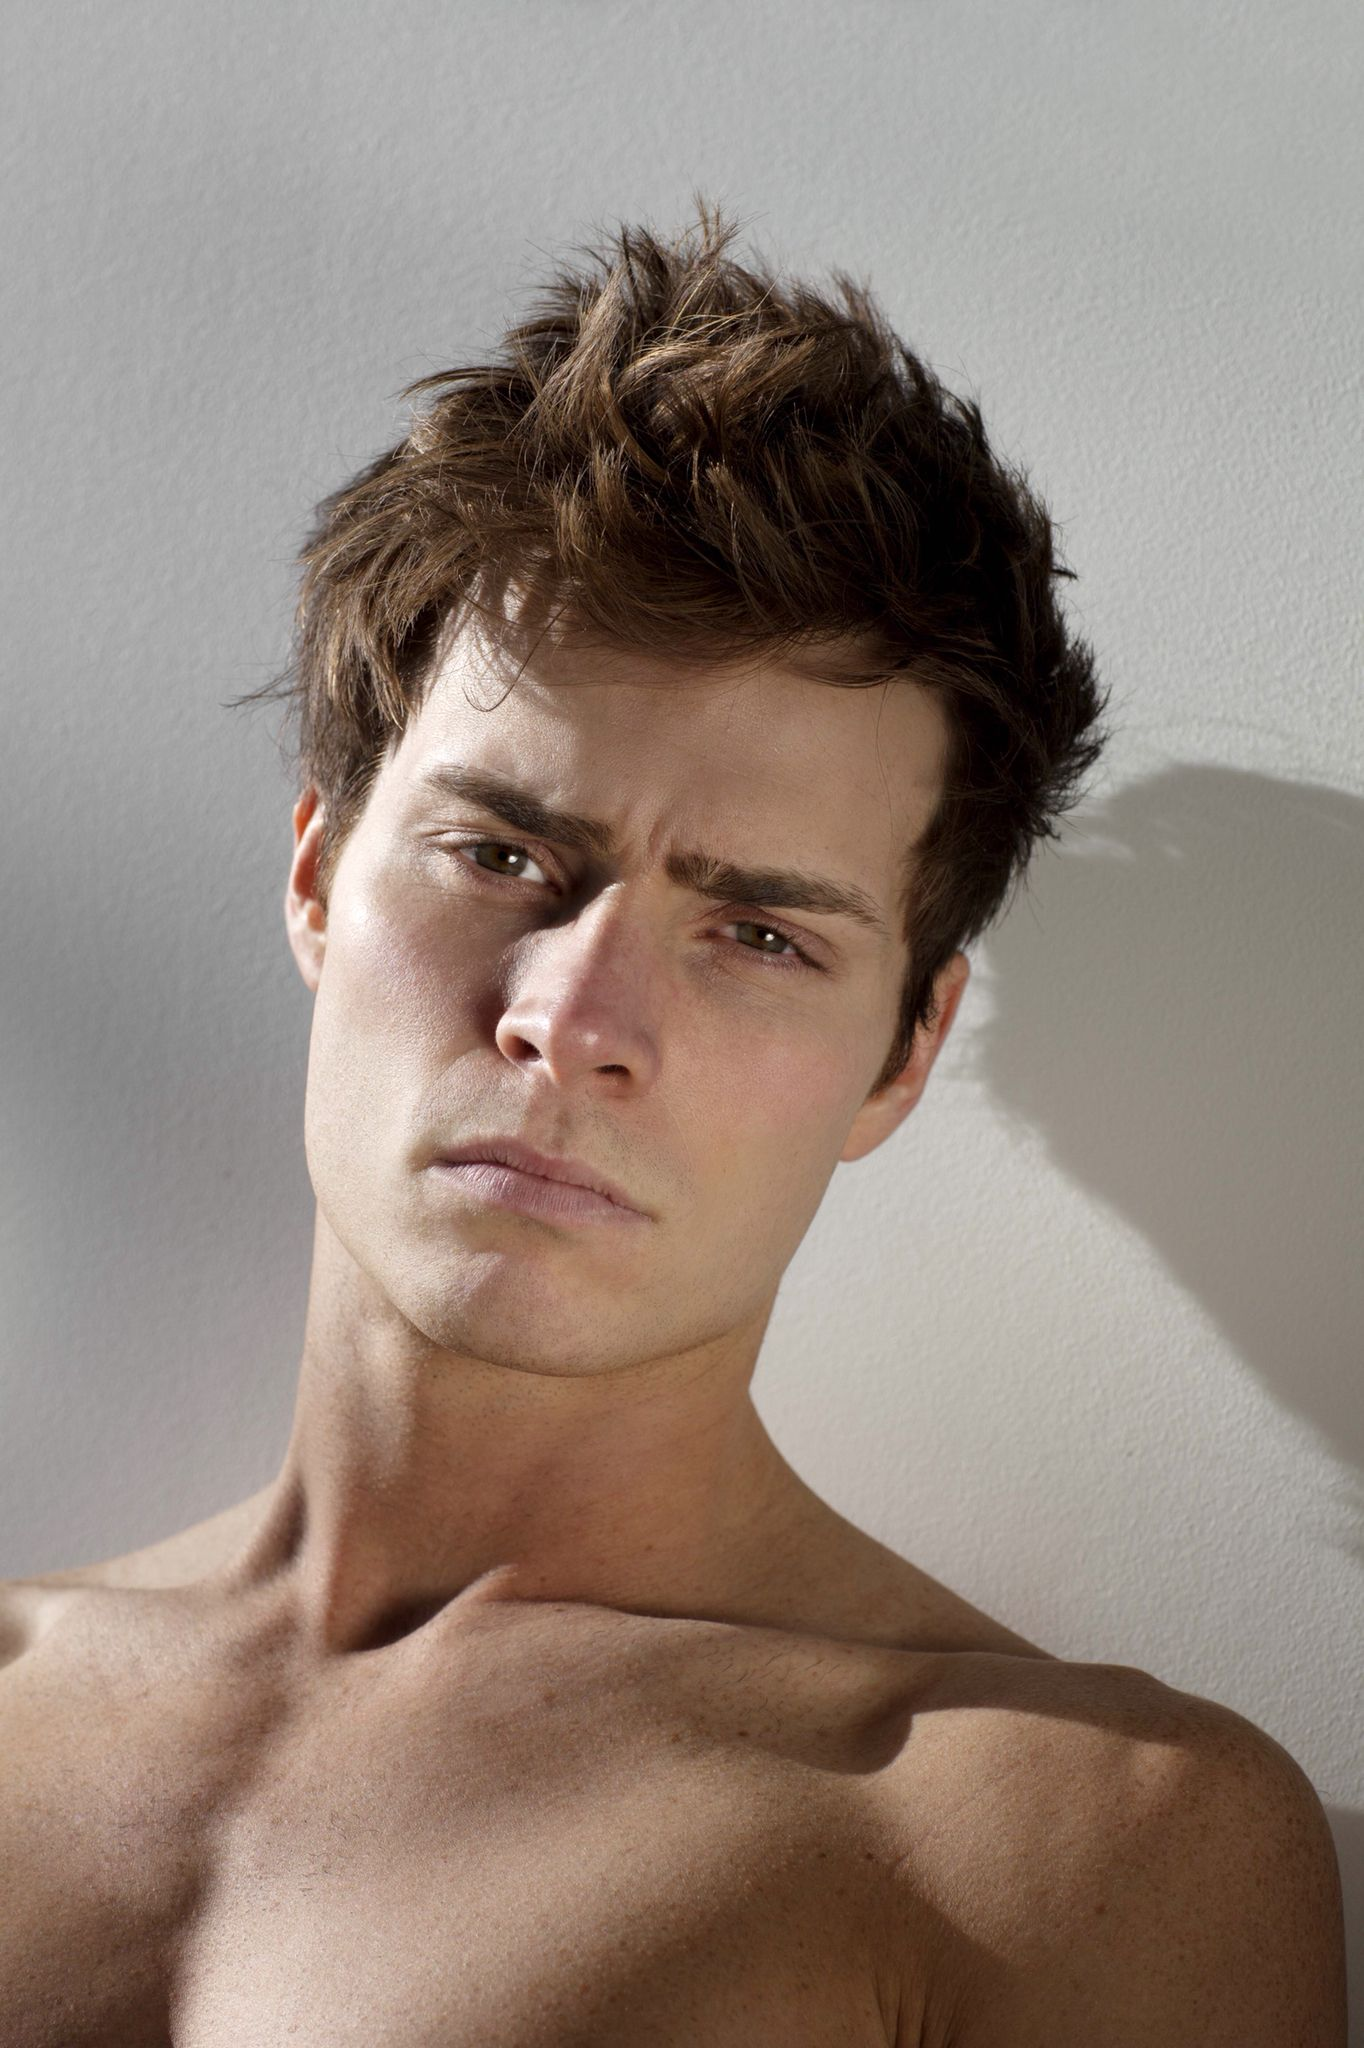 badda6473b5f6 Spencer Sutherland for Ford Models By Justice Apple www.justiceapple ...